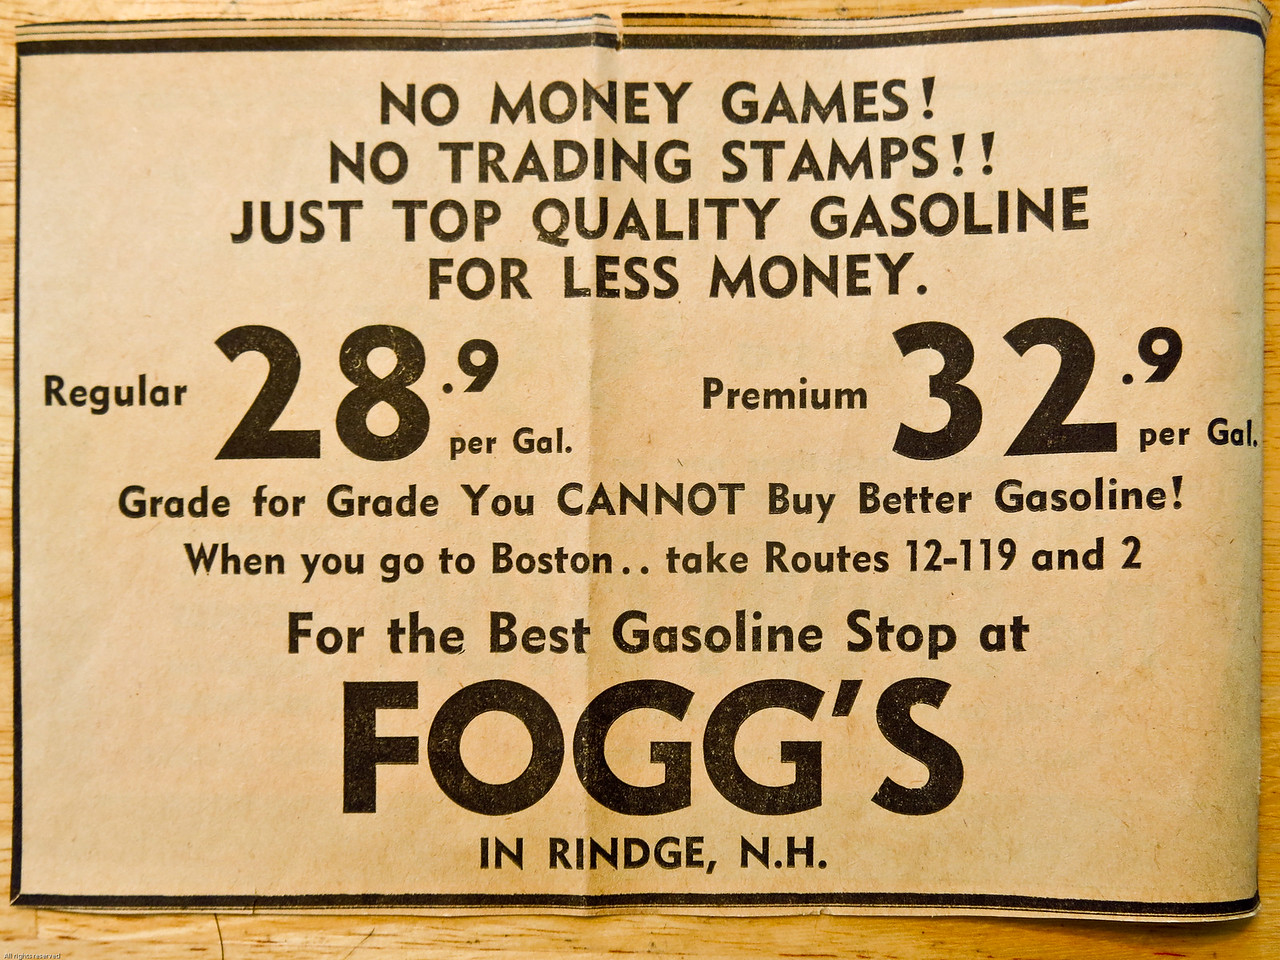 A newspaper advertisement for Fogg's gas station in Rindge